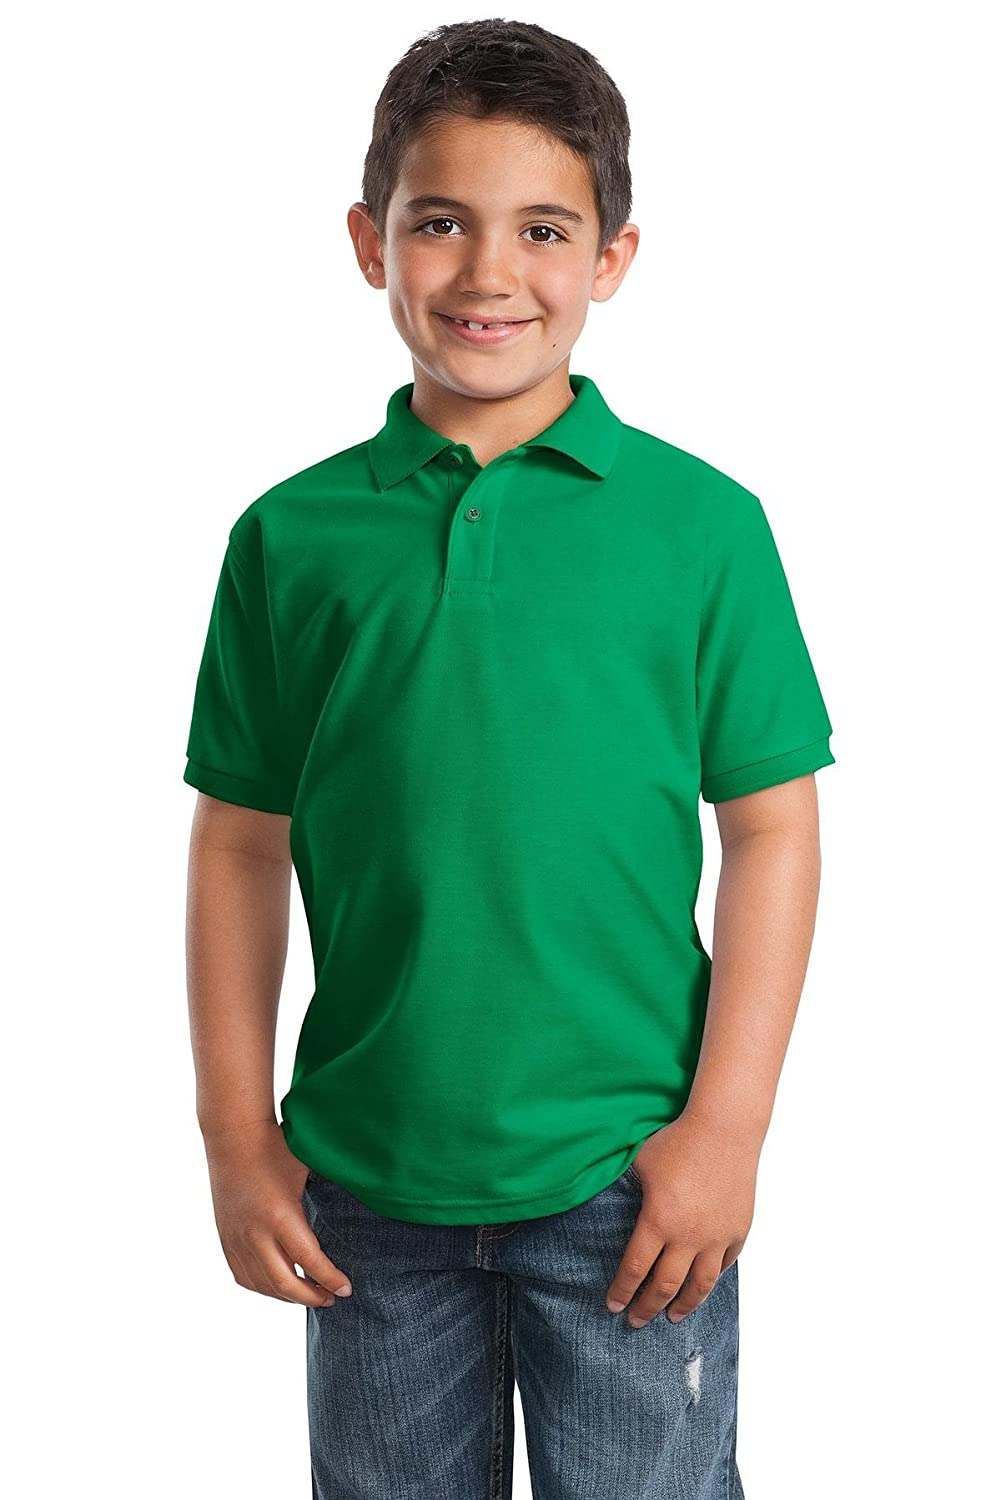 Y500 Kelly Green L Port Authority Youth Silk Touch Polo